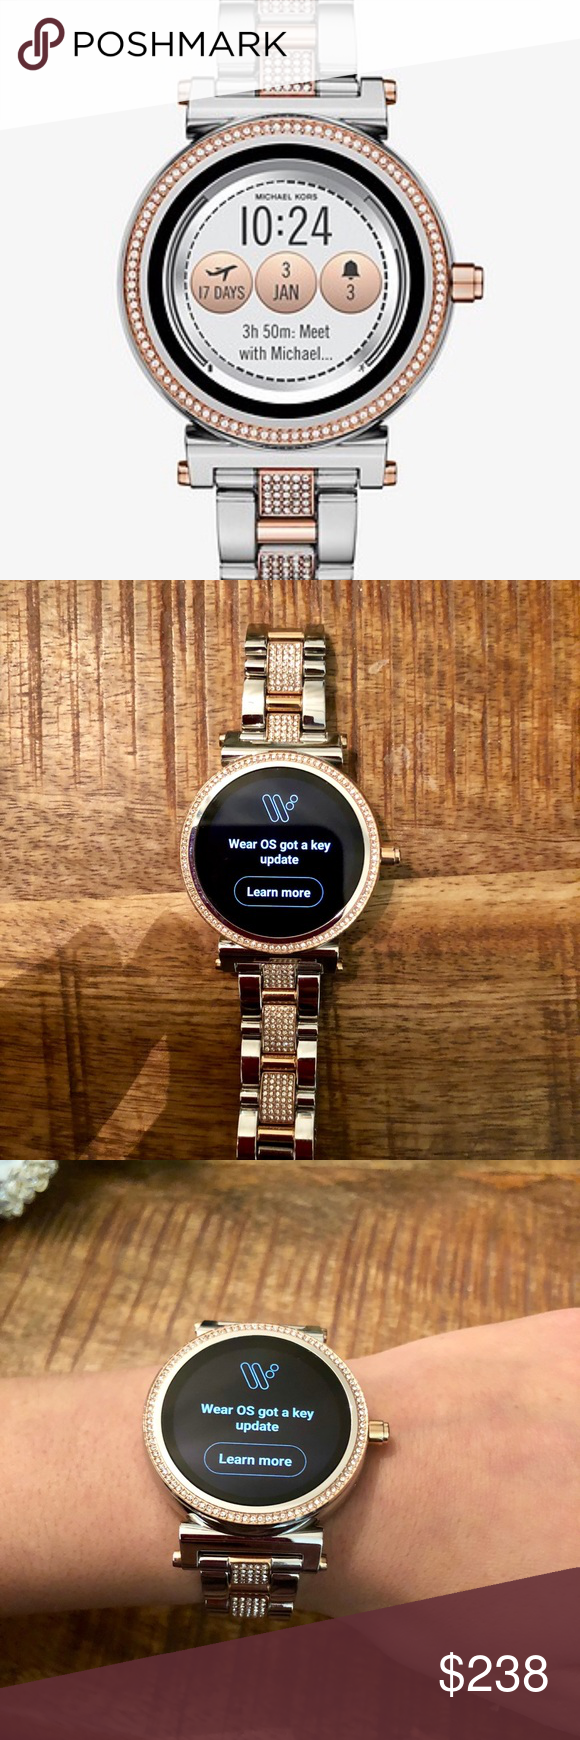 f0f57c2cf2e Michael Kors Access Watch MK Sofie Pavé Two-tone Smartwatch. Worn 3 times.  No Box. Charger included. • Powered by Android Wear™ • Compatible with  iPhone® ...